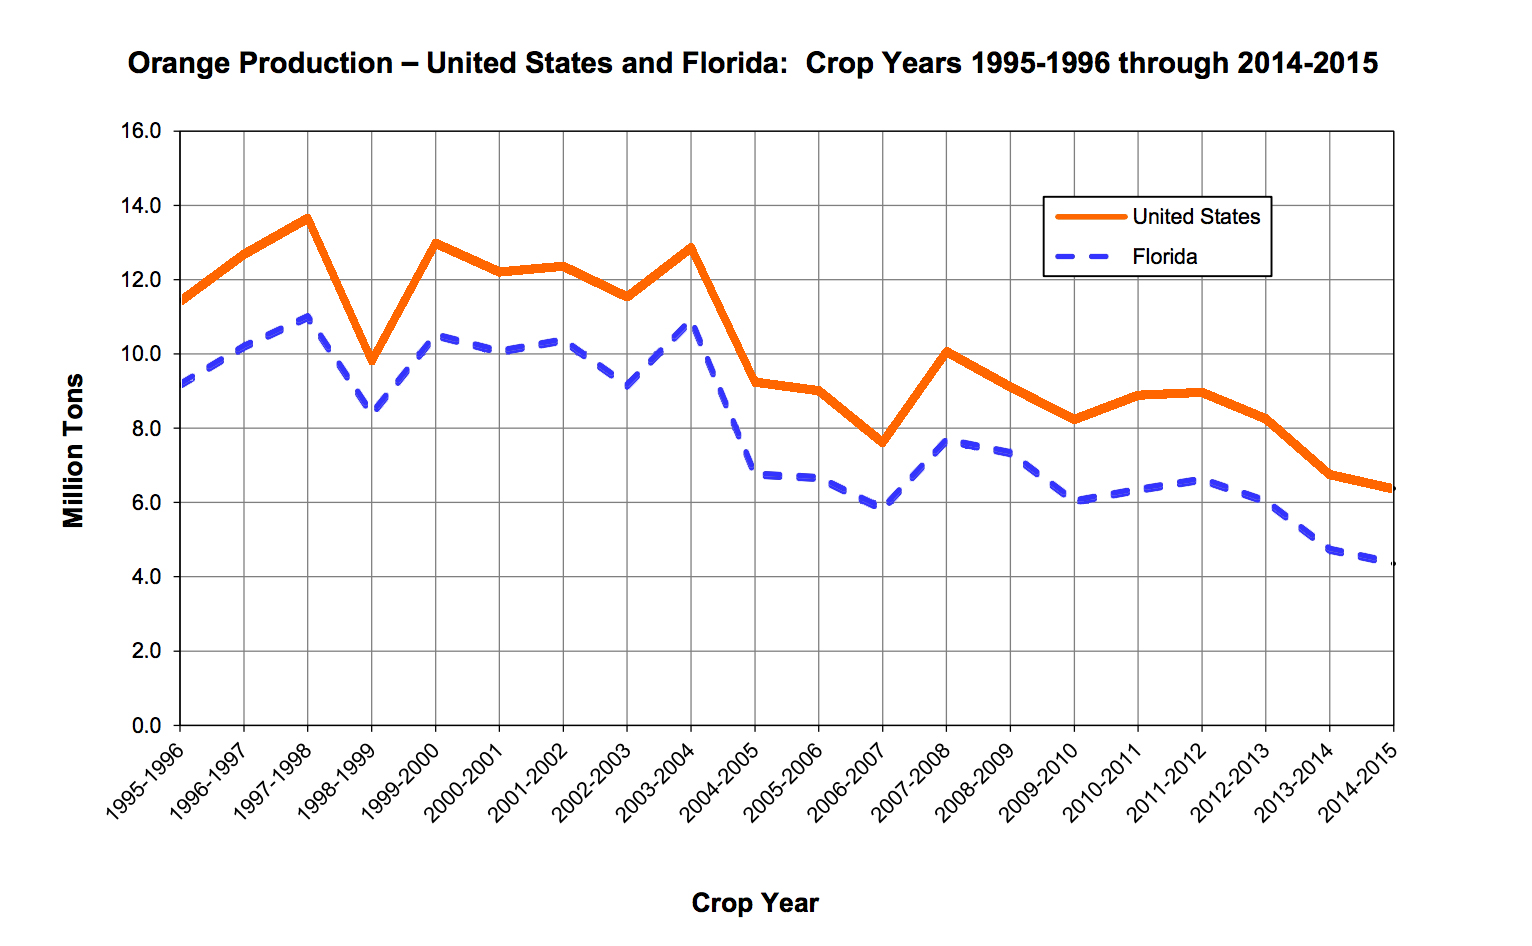 Data from the Florida Department of Agriculture Citrus Production Statistics for the year 2014-2015.